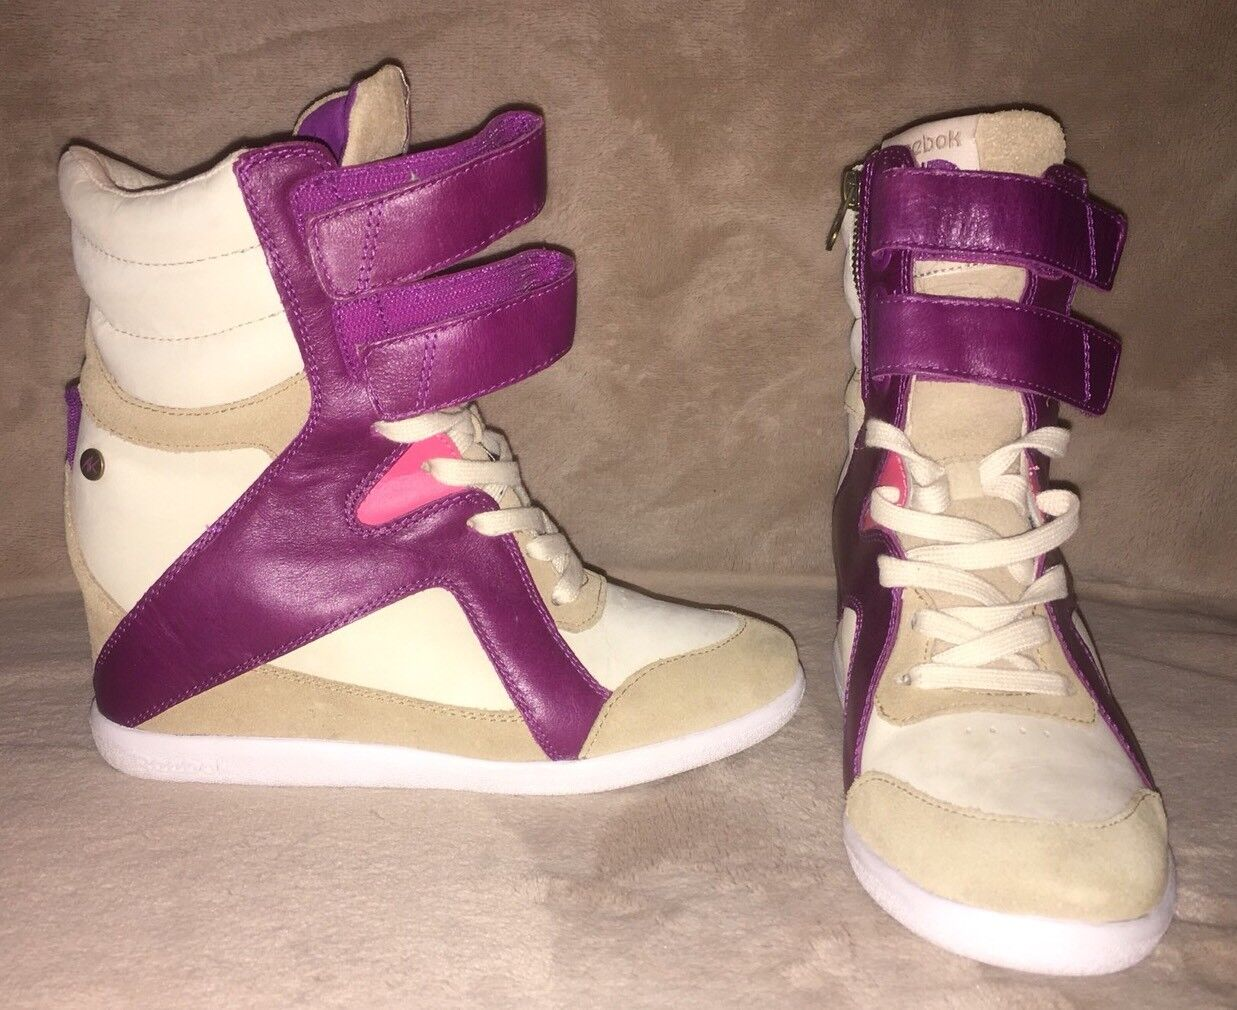 Reebok Alicia Keys Hidden Wedge Sneakers Sz 7